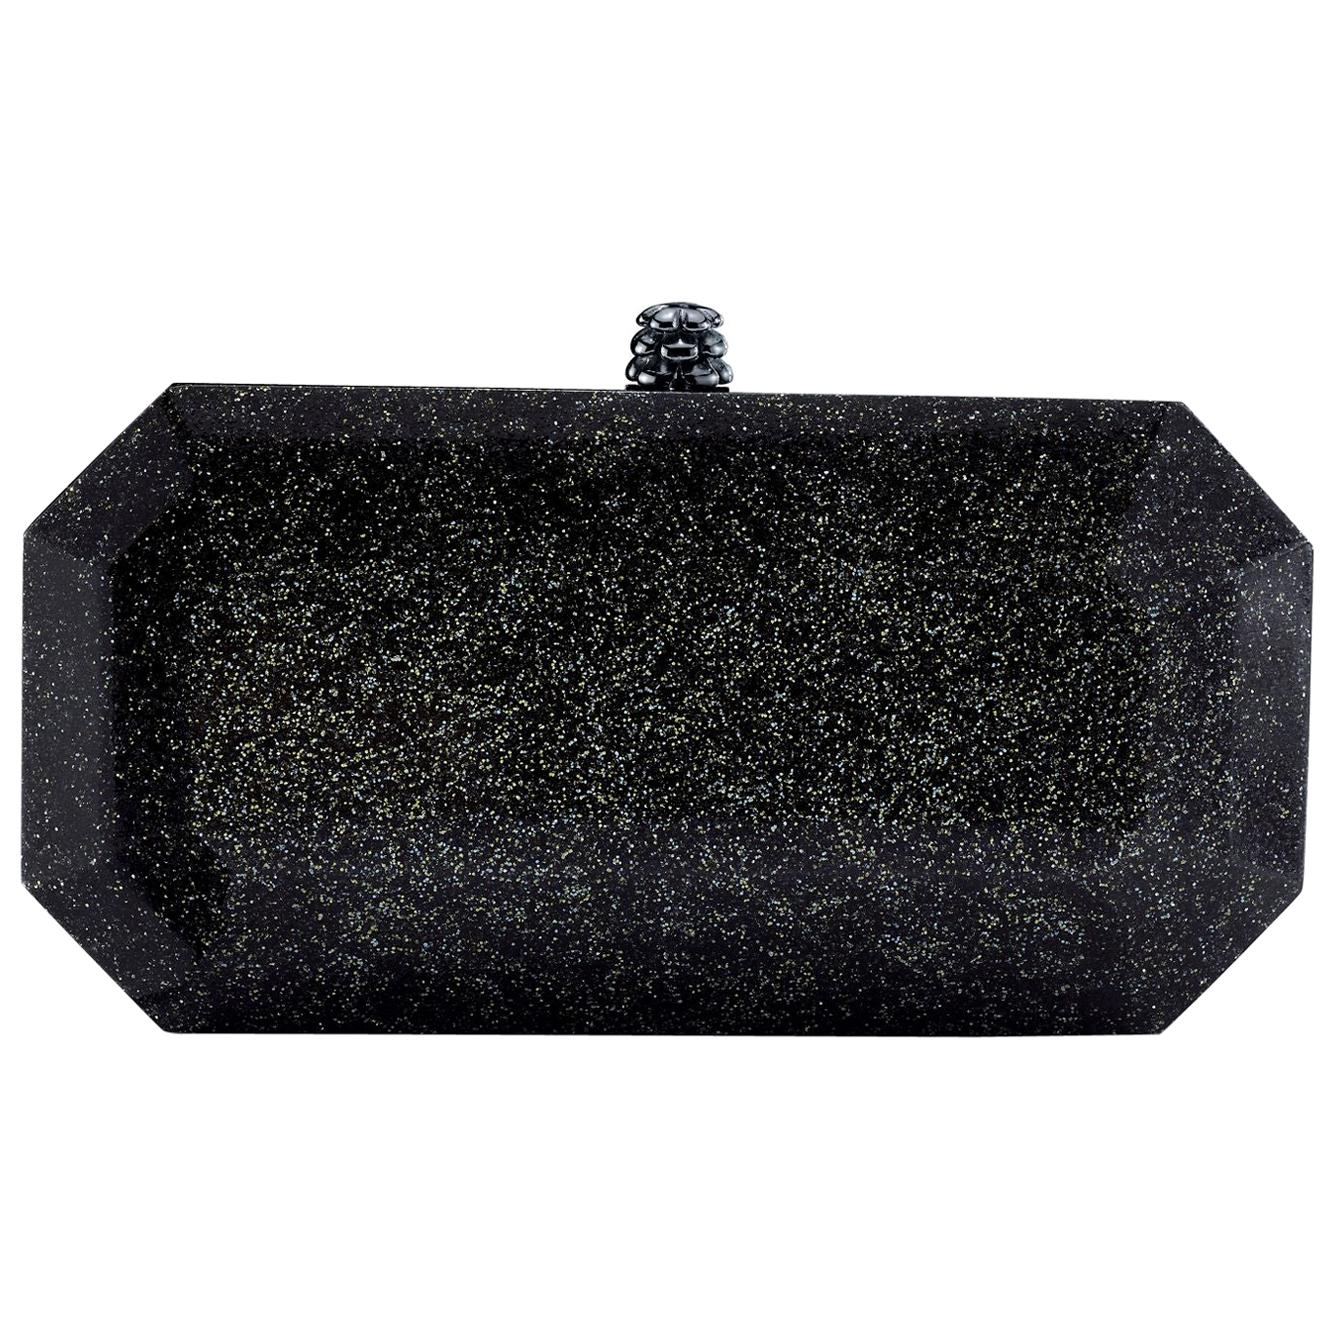 TYLER ELLIS Perry Clutch Small in Black Glitter Plexi with Gunmetal Hardware